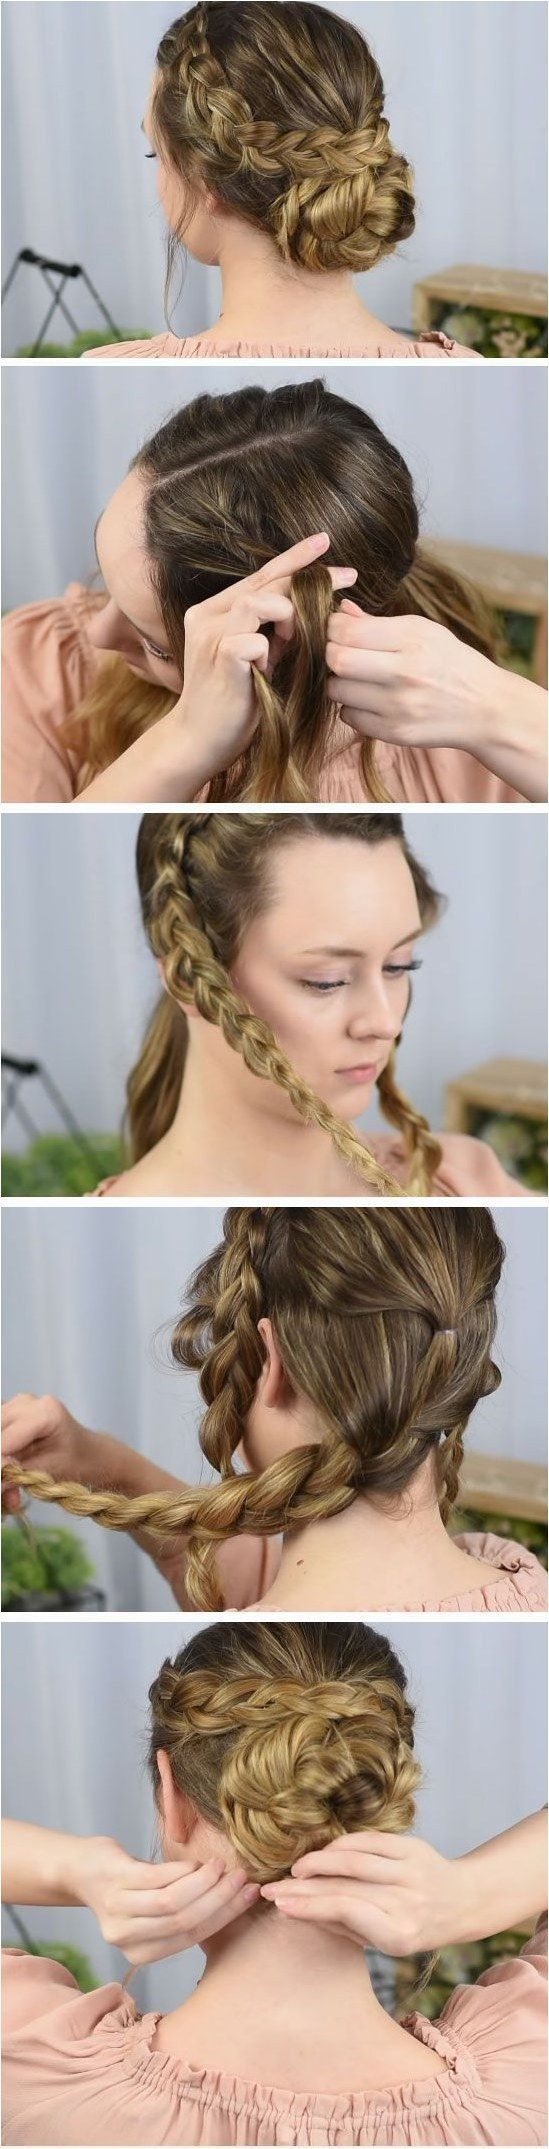 Dutch braided up do quick diy prom hairstyles for medium hair and easy homecoming long braids styl  also rh pinterest